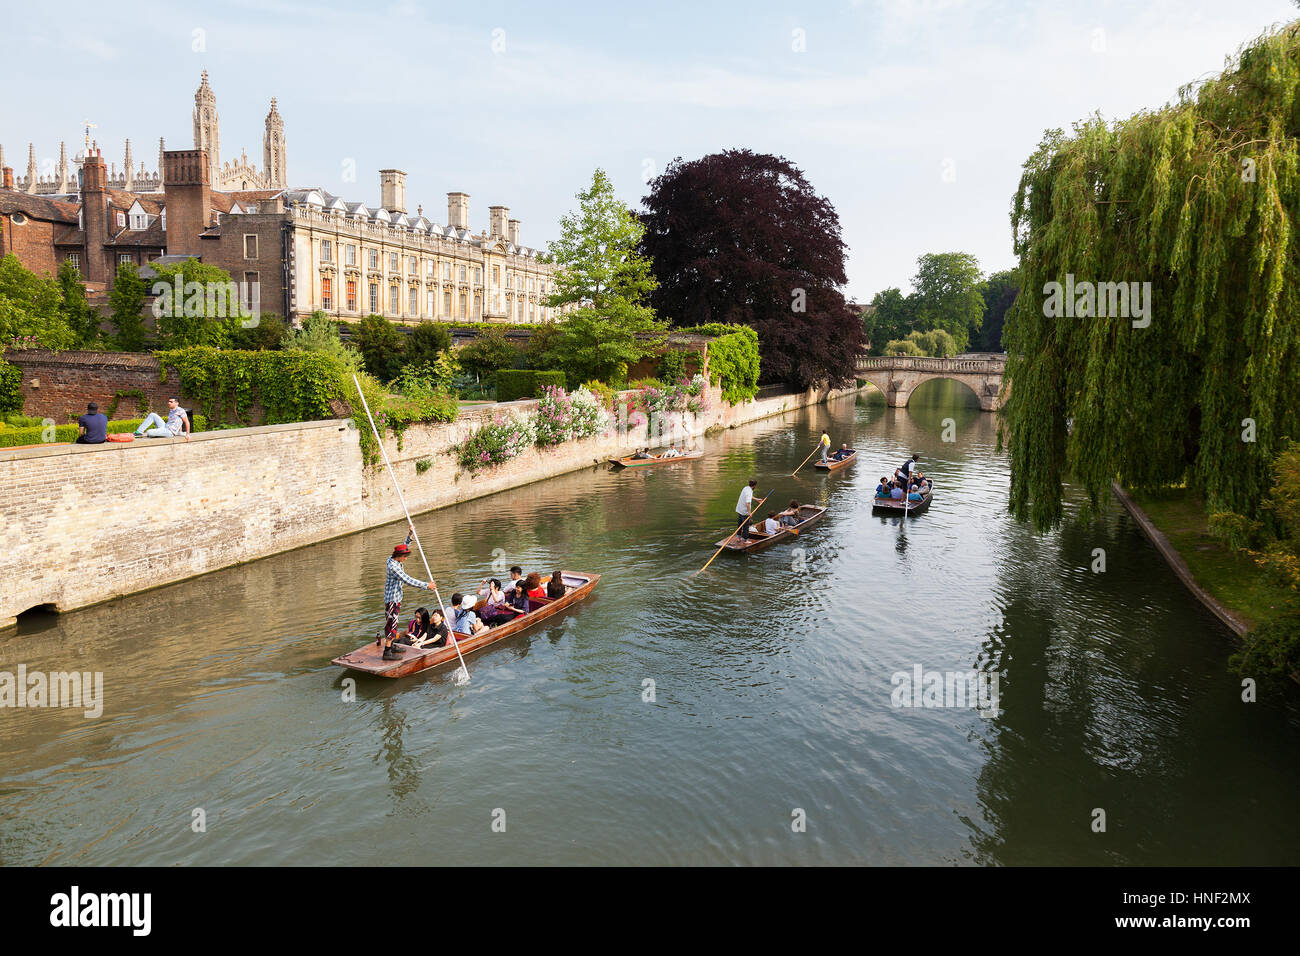 CAMBRIDGE, UK - JUNE 12, 2015 : People in punts on the river Cam  with Clare College and Clare Bridge in the background - Stock Image